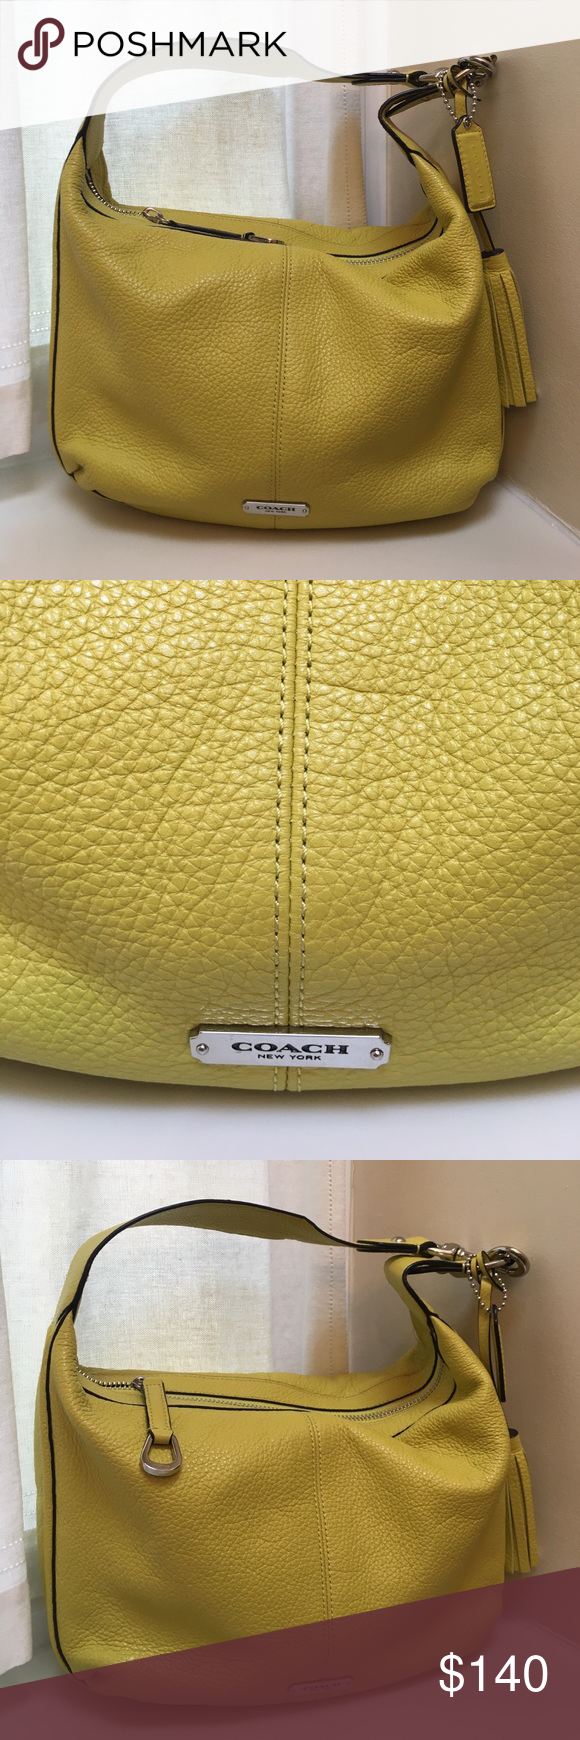 Authentic Coach Citron Summer Pebbled Hobo Bag Authentic Coach Citron Summer Pebbled Leather Hobo Bag. Citron is a yellowish/green color perfect for summer!! Hardware is silver and inside lining is a silky khaki color. No dust Bag. Inside is perfect, only worn a few times. Two small pin size marks as pictured. Coach Bags Hobos